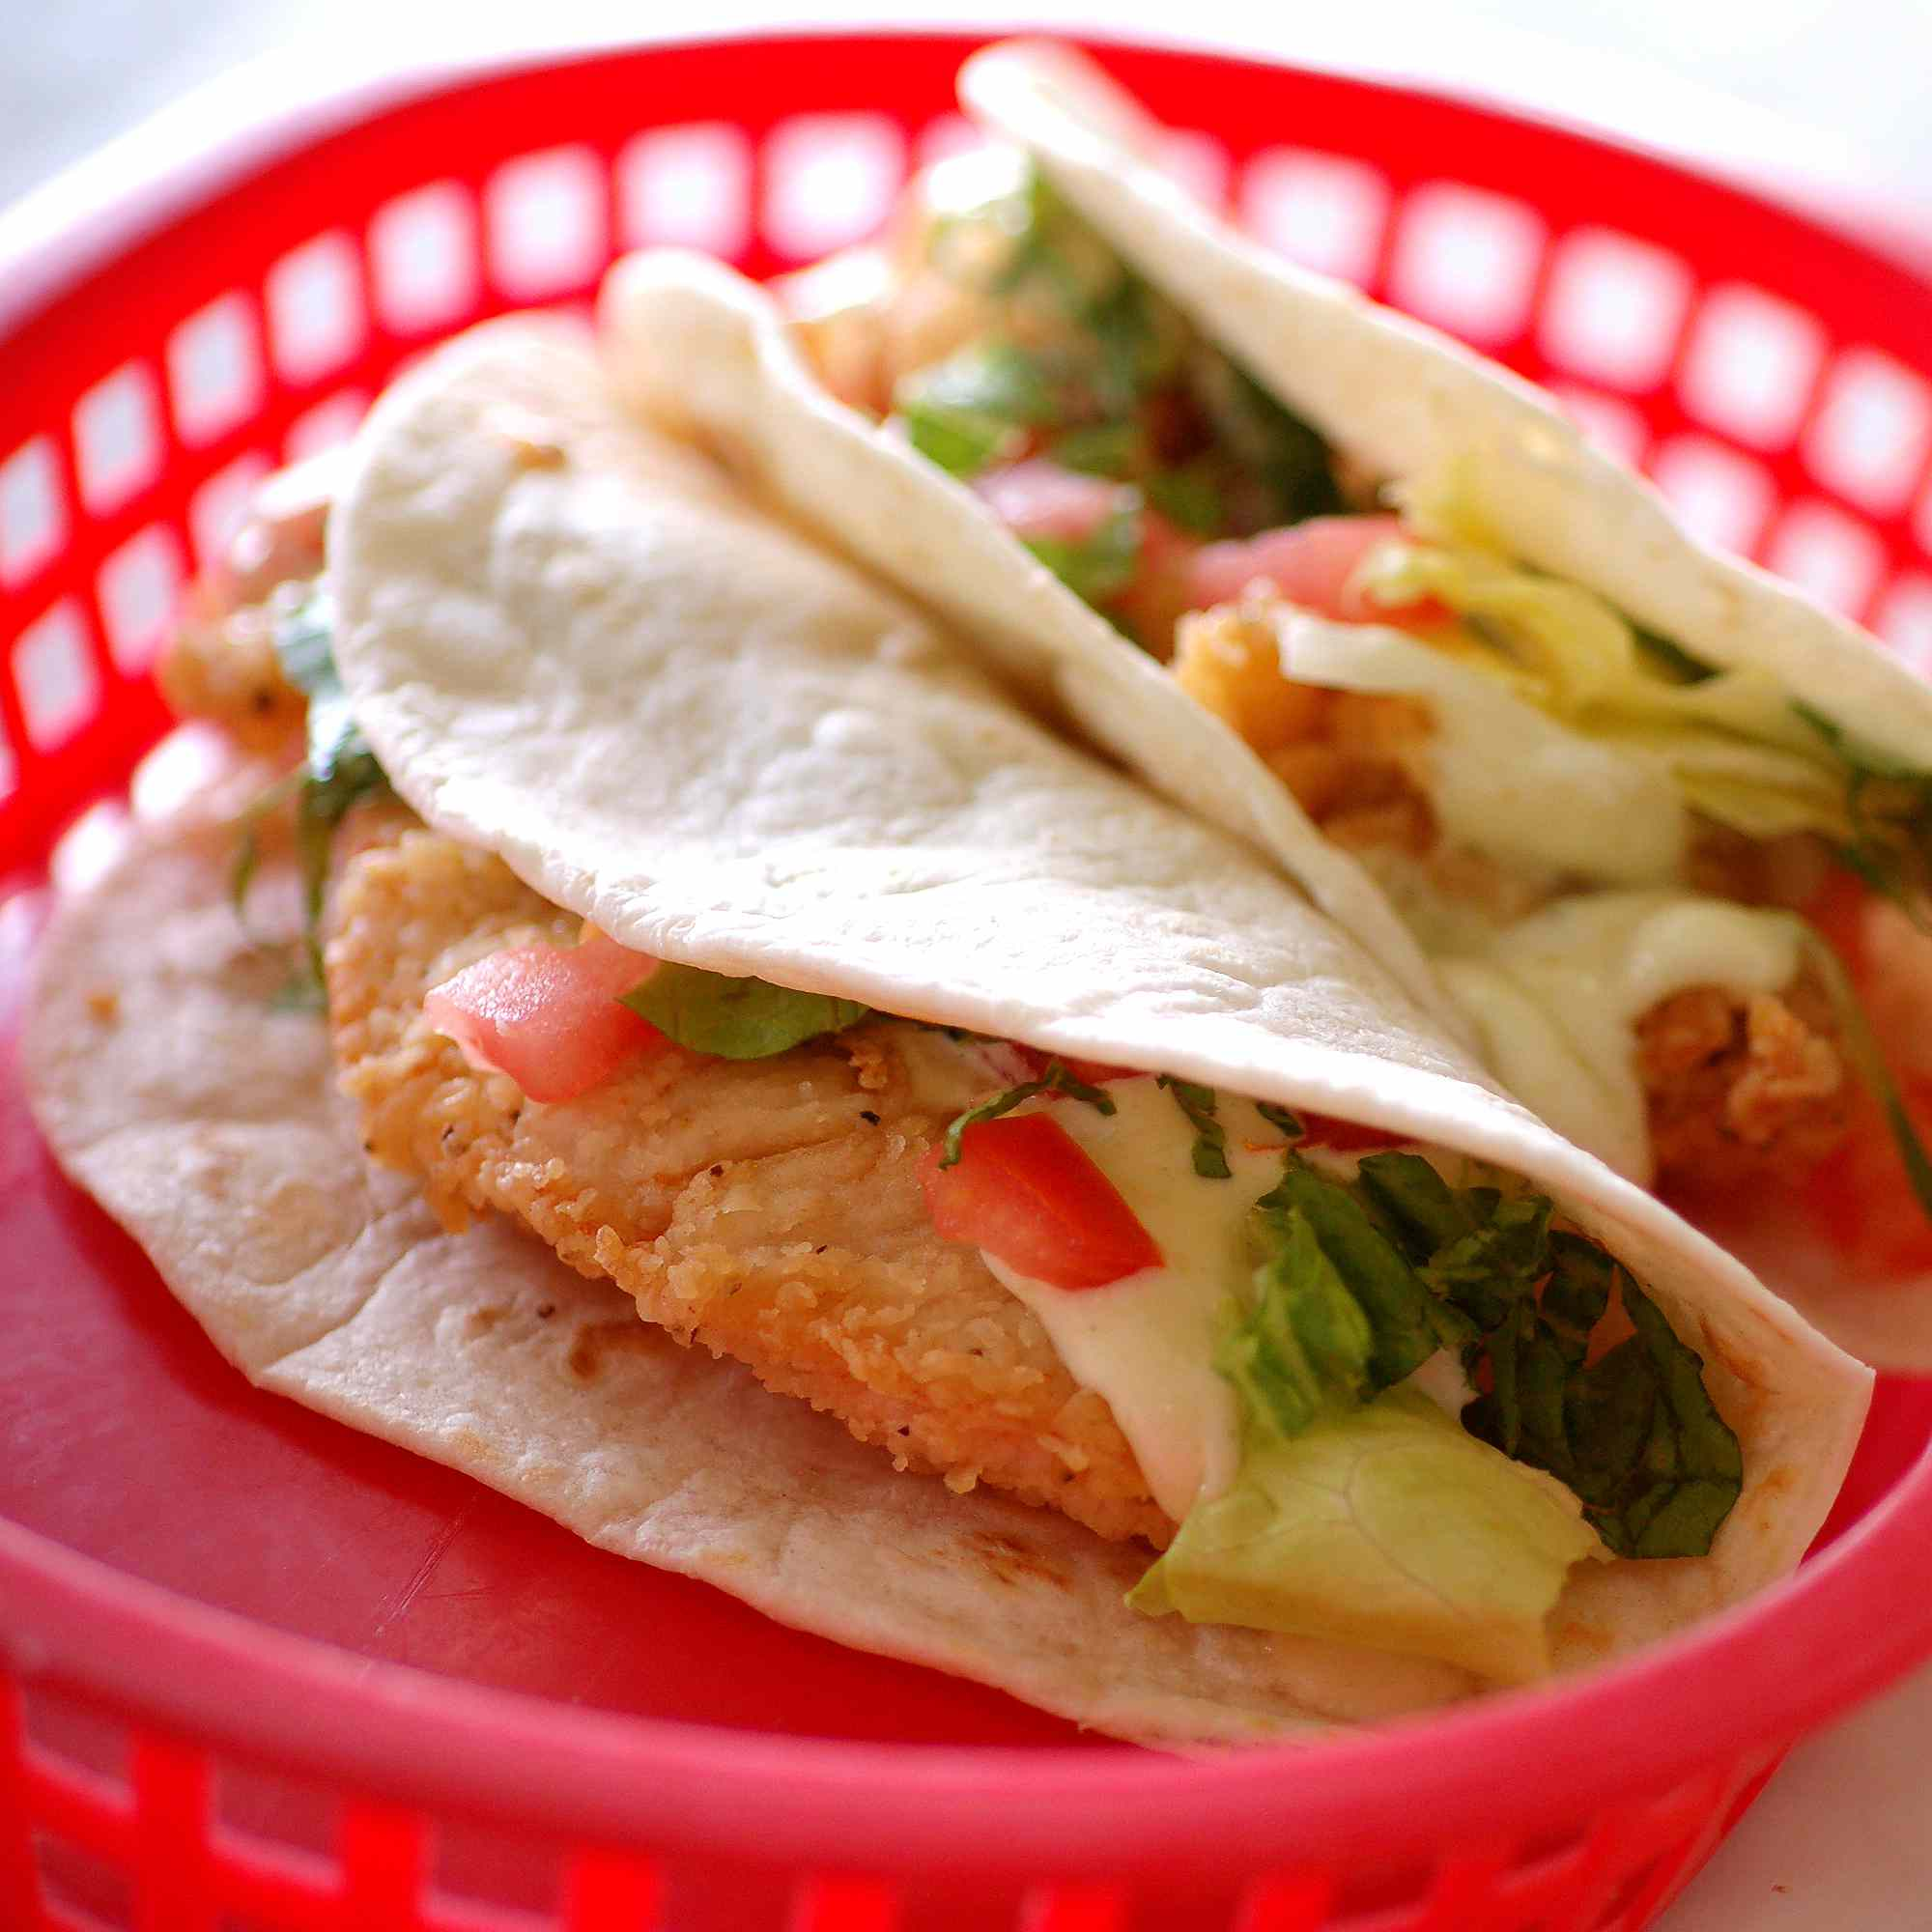 Two fish tacos in flour tortillas in a red plastic basket